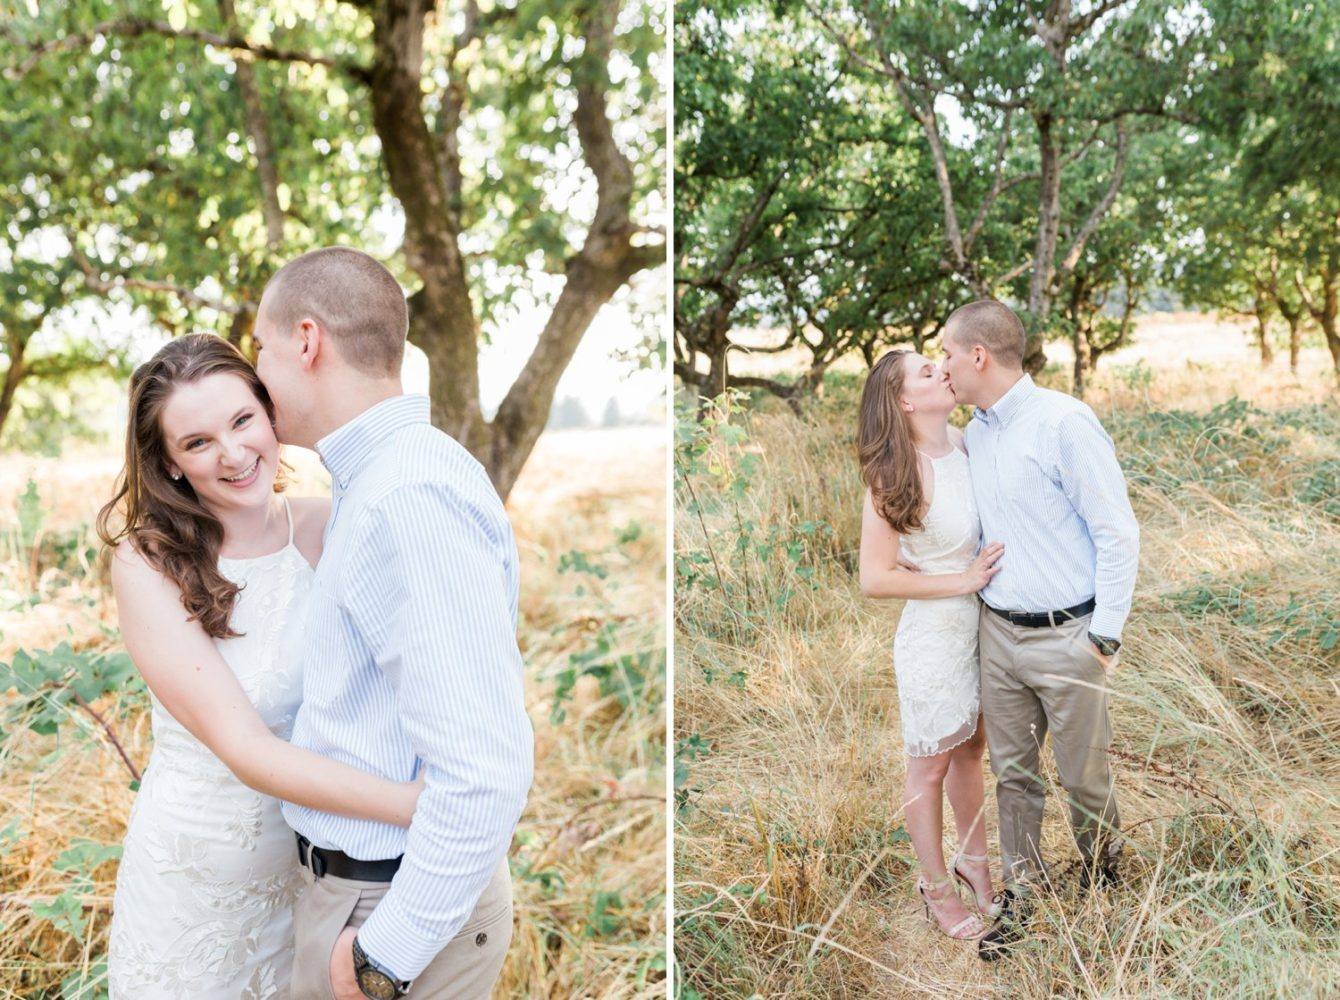 Candid moments between Portland couple during their engagement photo session